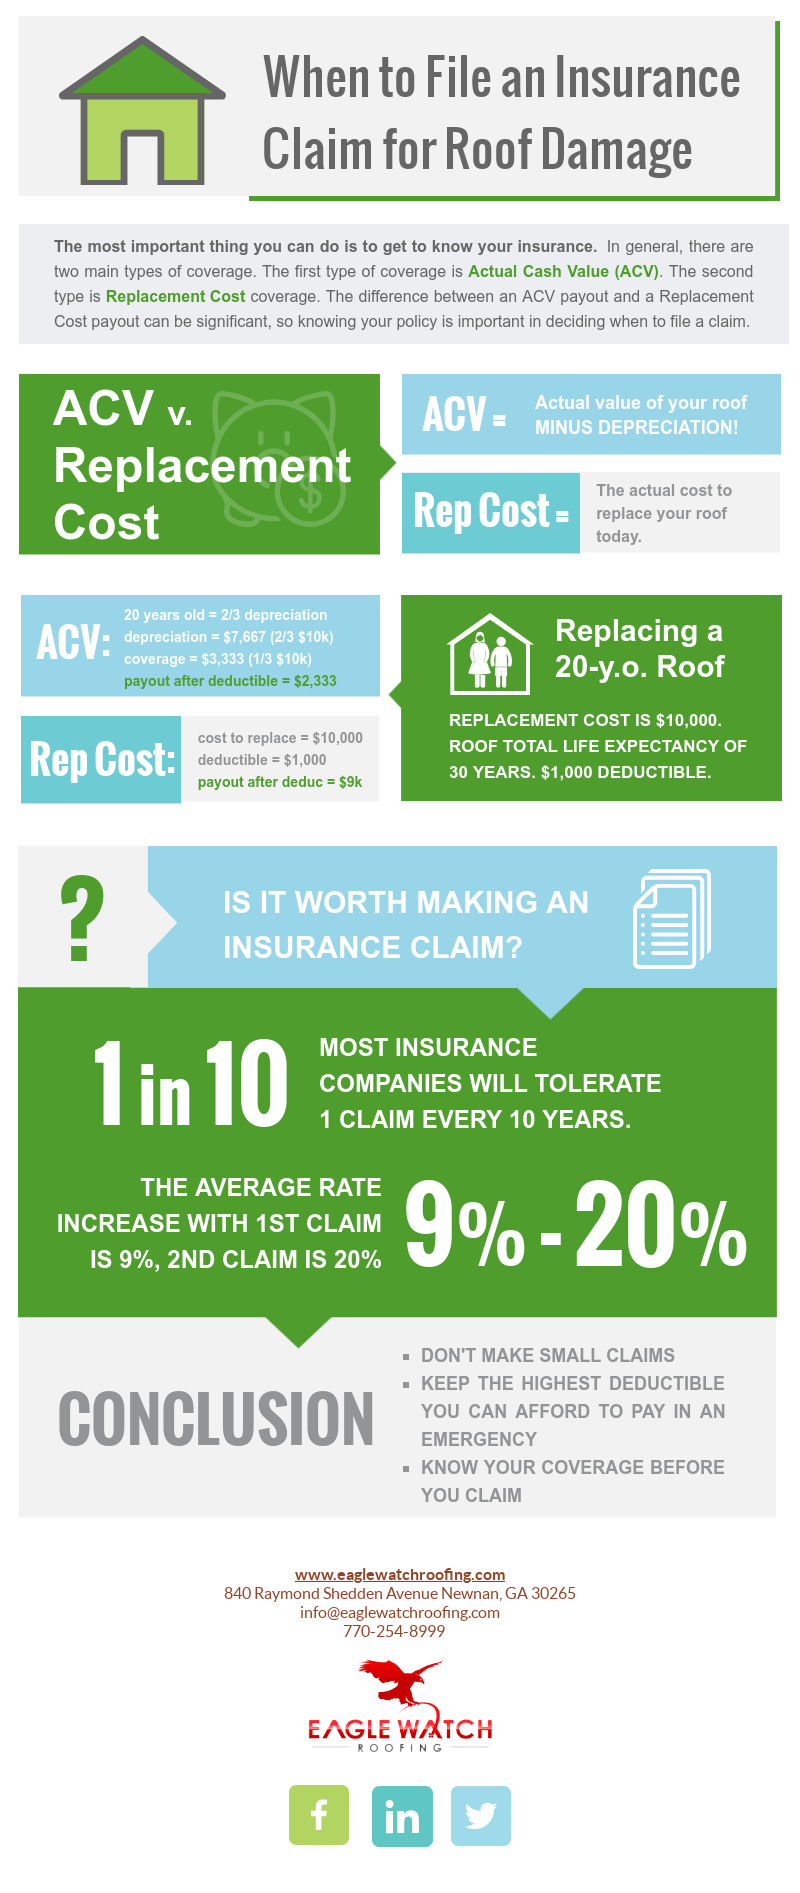 When to File an Insurance Claim for Roof Damage [infographic]